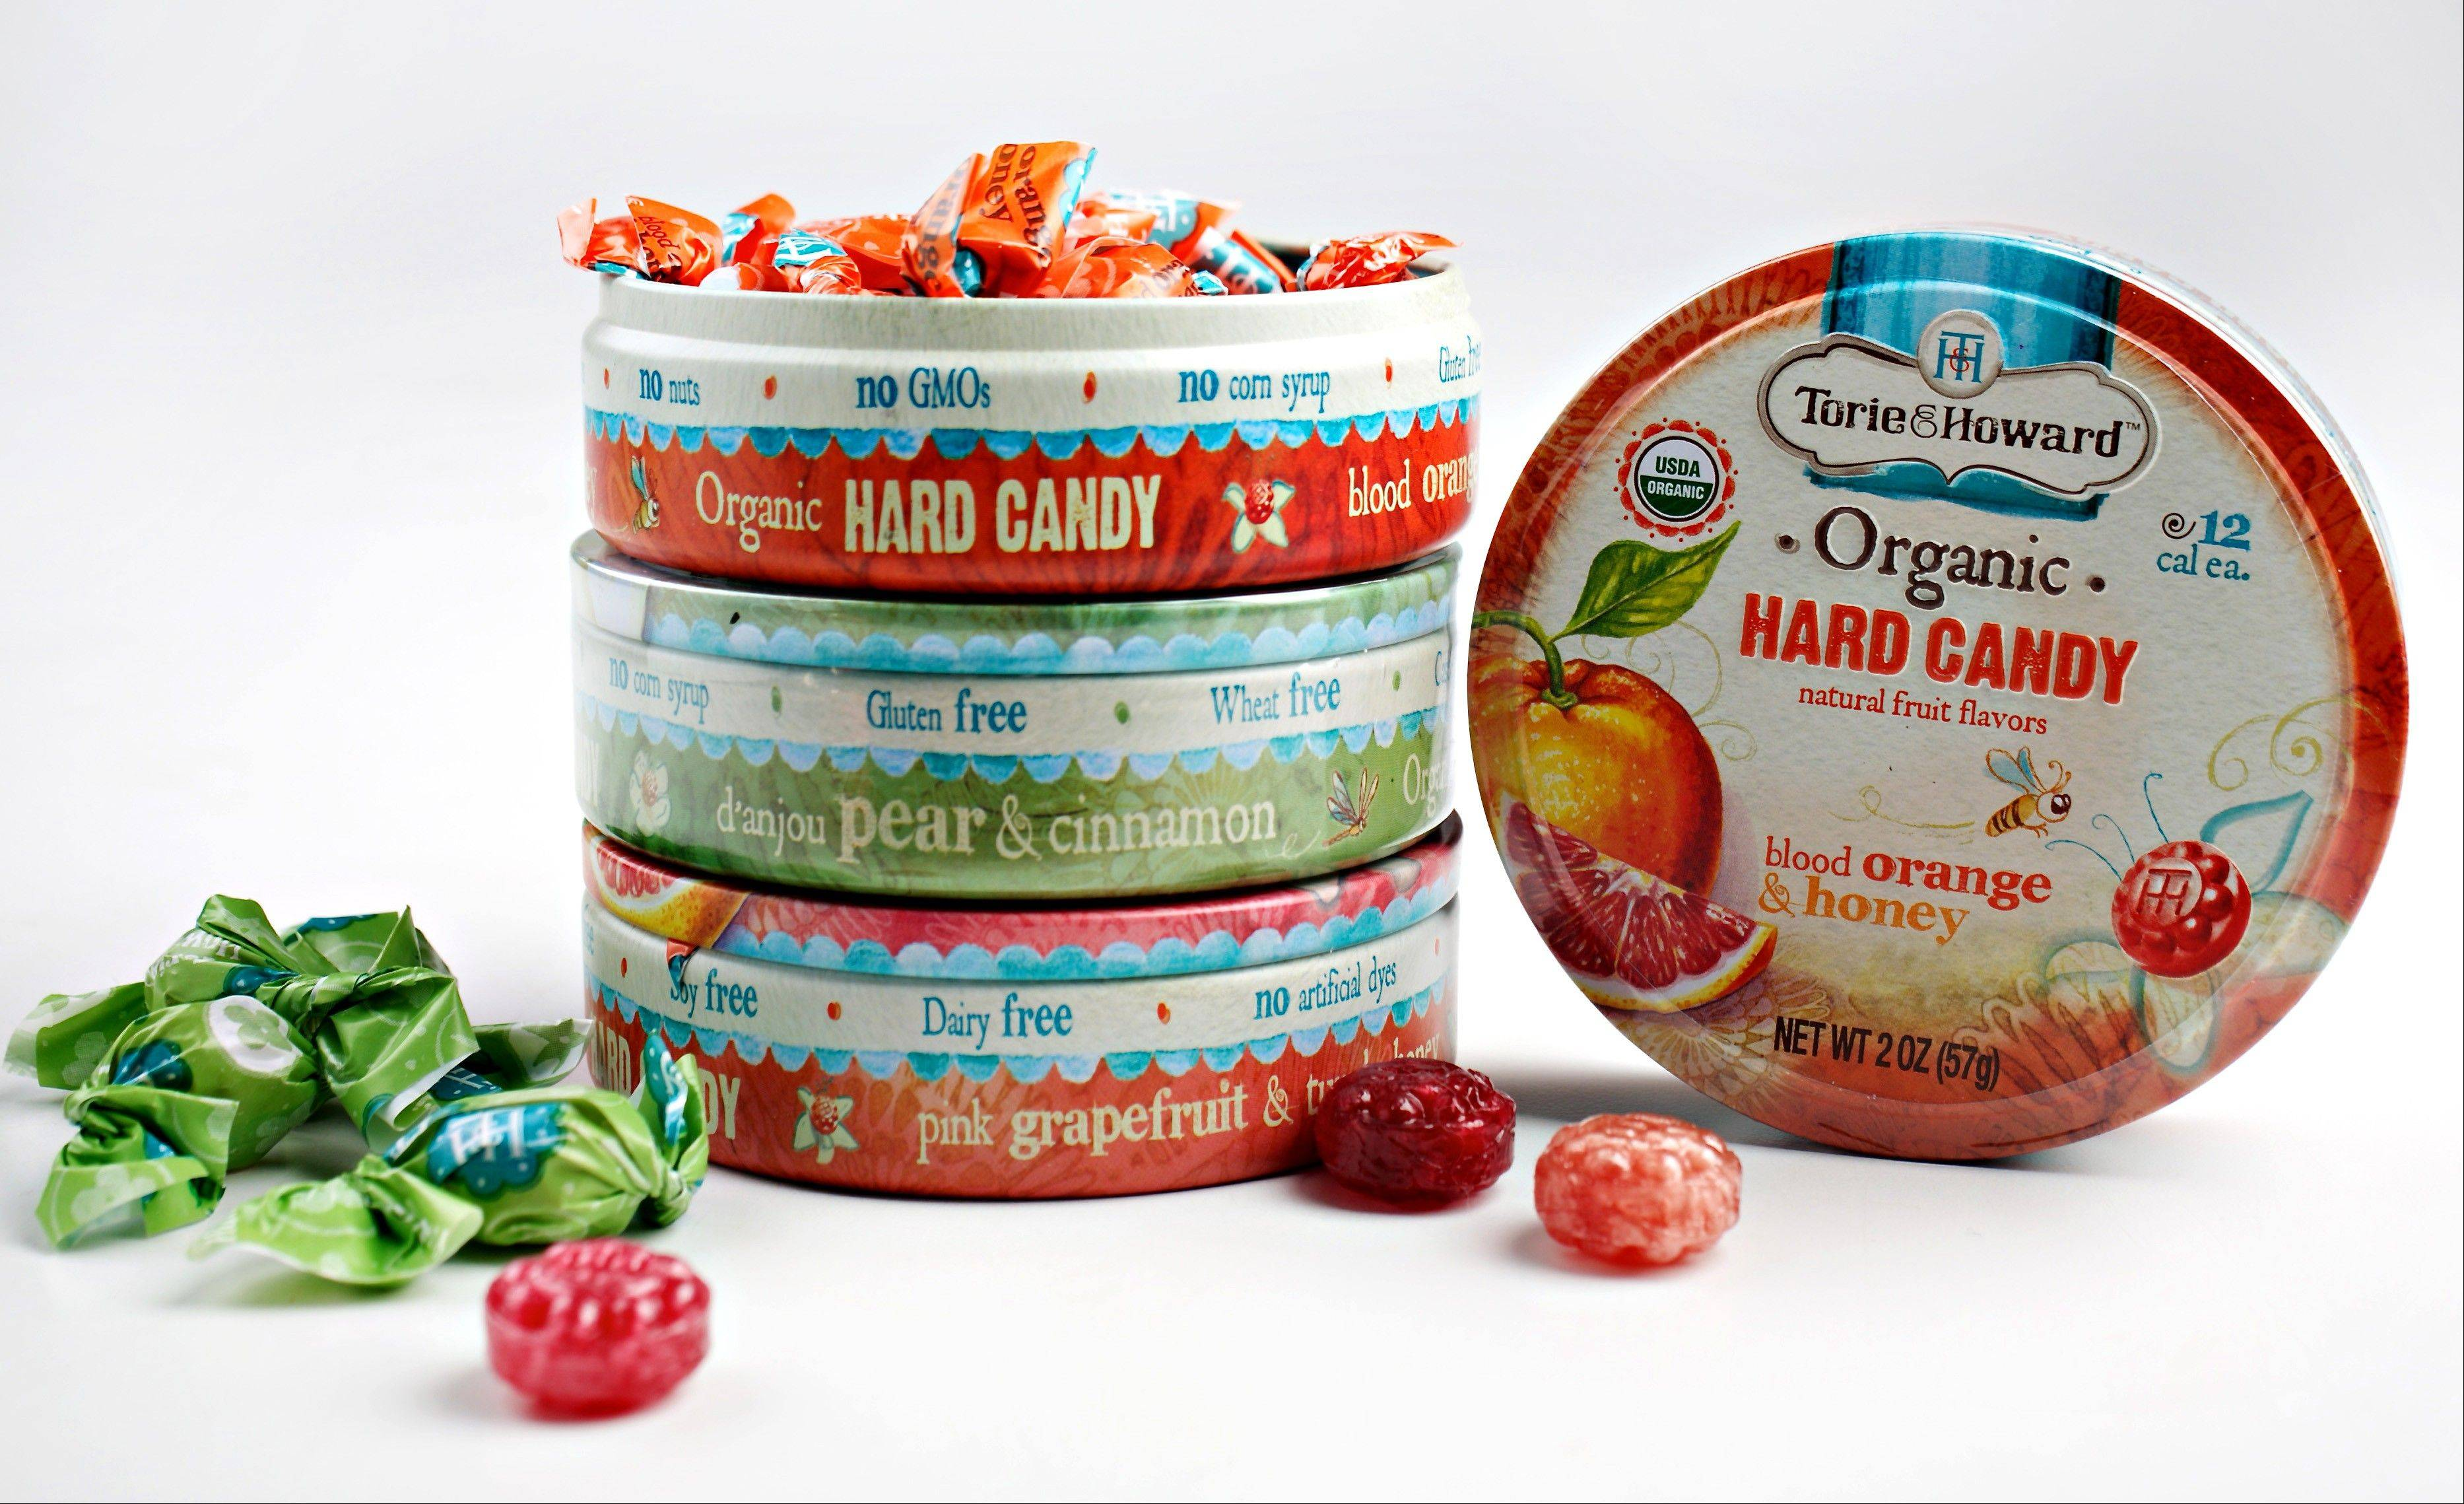 Satisfying a sweet tooth. It took almost two years to get Torie & Howard Organic Hard Candy ready to market.